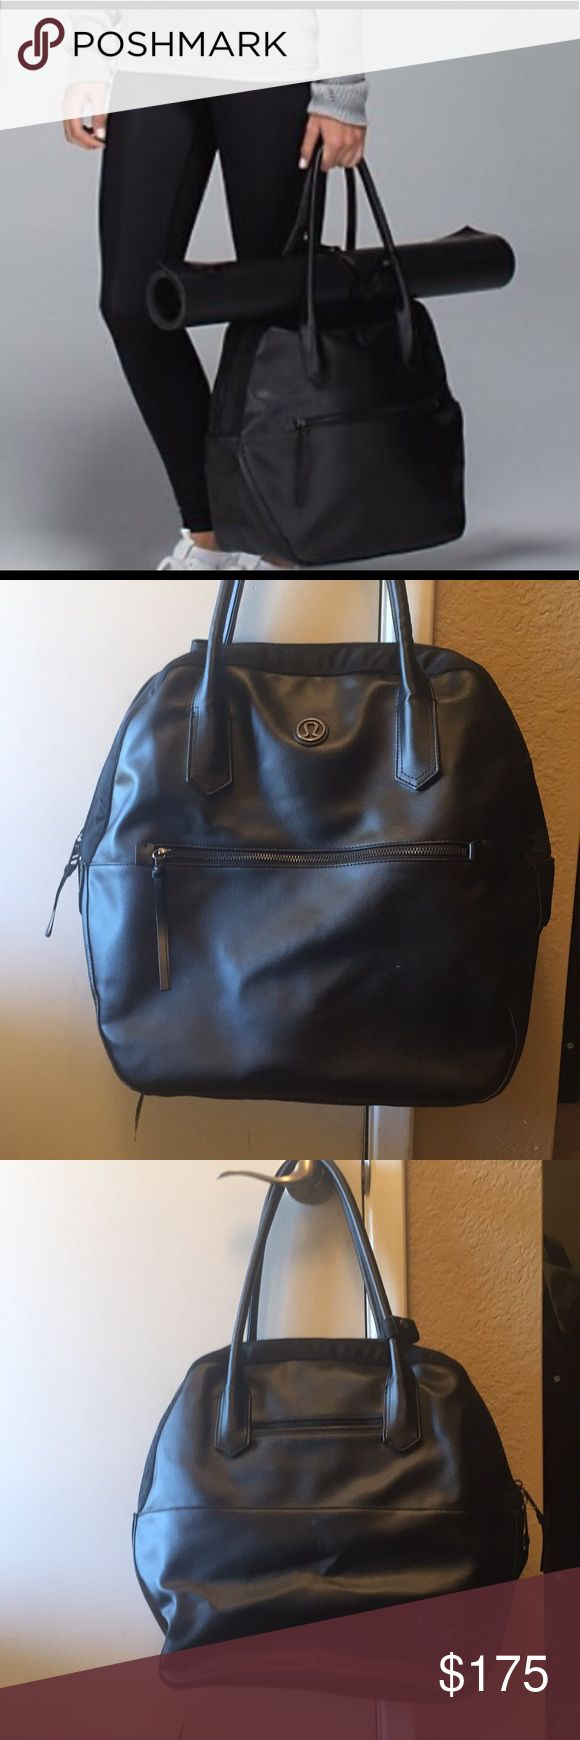 Lululemon Bag Happy Hatha Hour Large Sport Black Absolutely beautiful large, Lululemon Happy Hatha Hour Bag! This bag is a really nice and it is ready to be put to good use. Has been gently worn with minor rub marks (mostly on back of the bag) as shown in photos (the ones in the front are not very noticeable). The inner lining is in great shape! There is a red mark and slight yellowing near it on the inside of the inner pocket portion (shown in photo). All and all a wonderful bag that is…